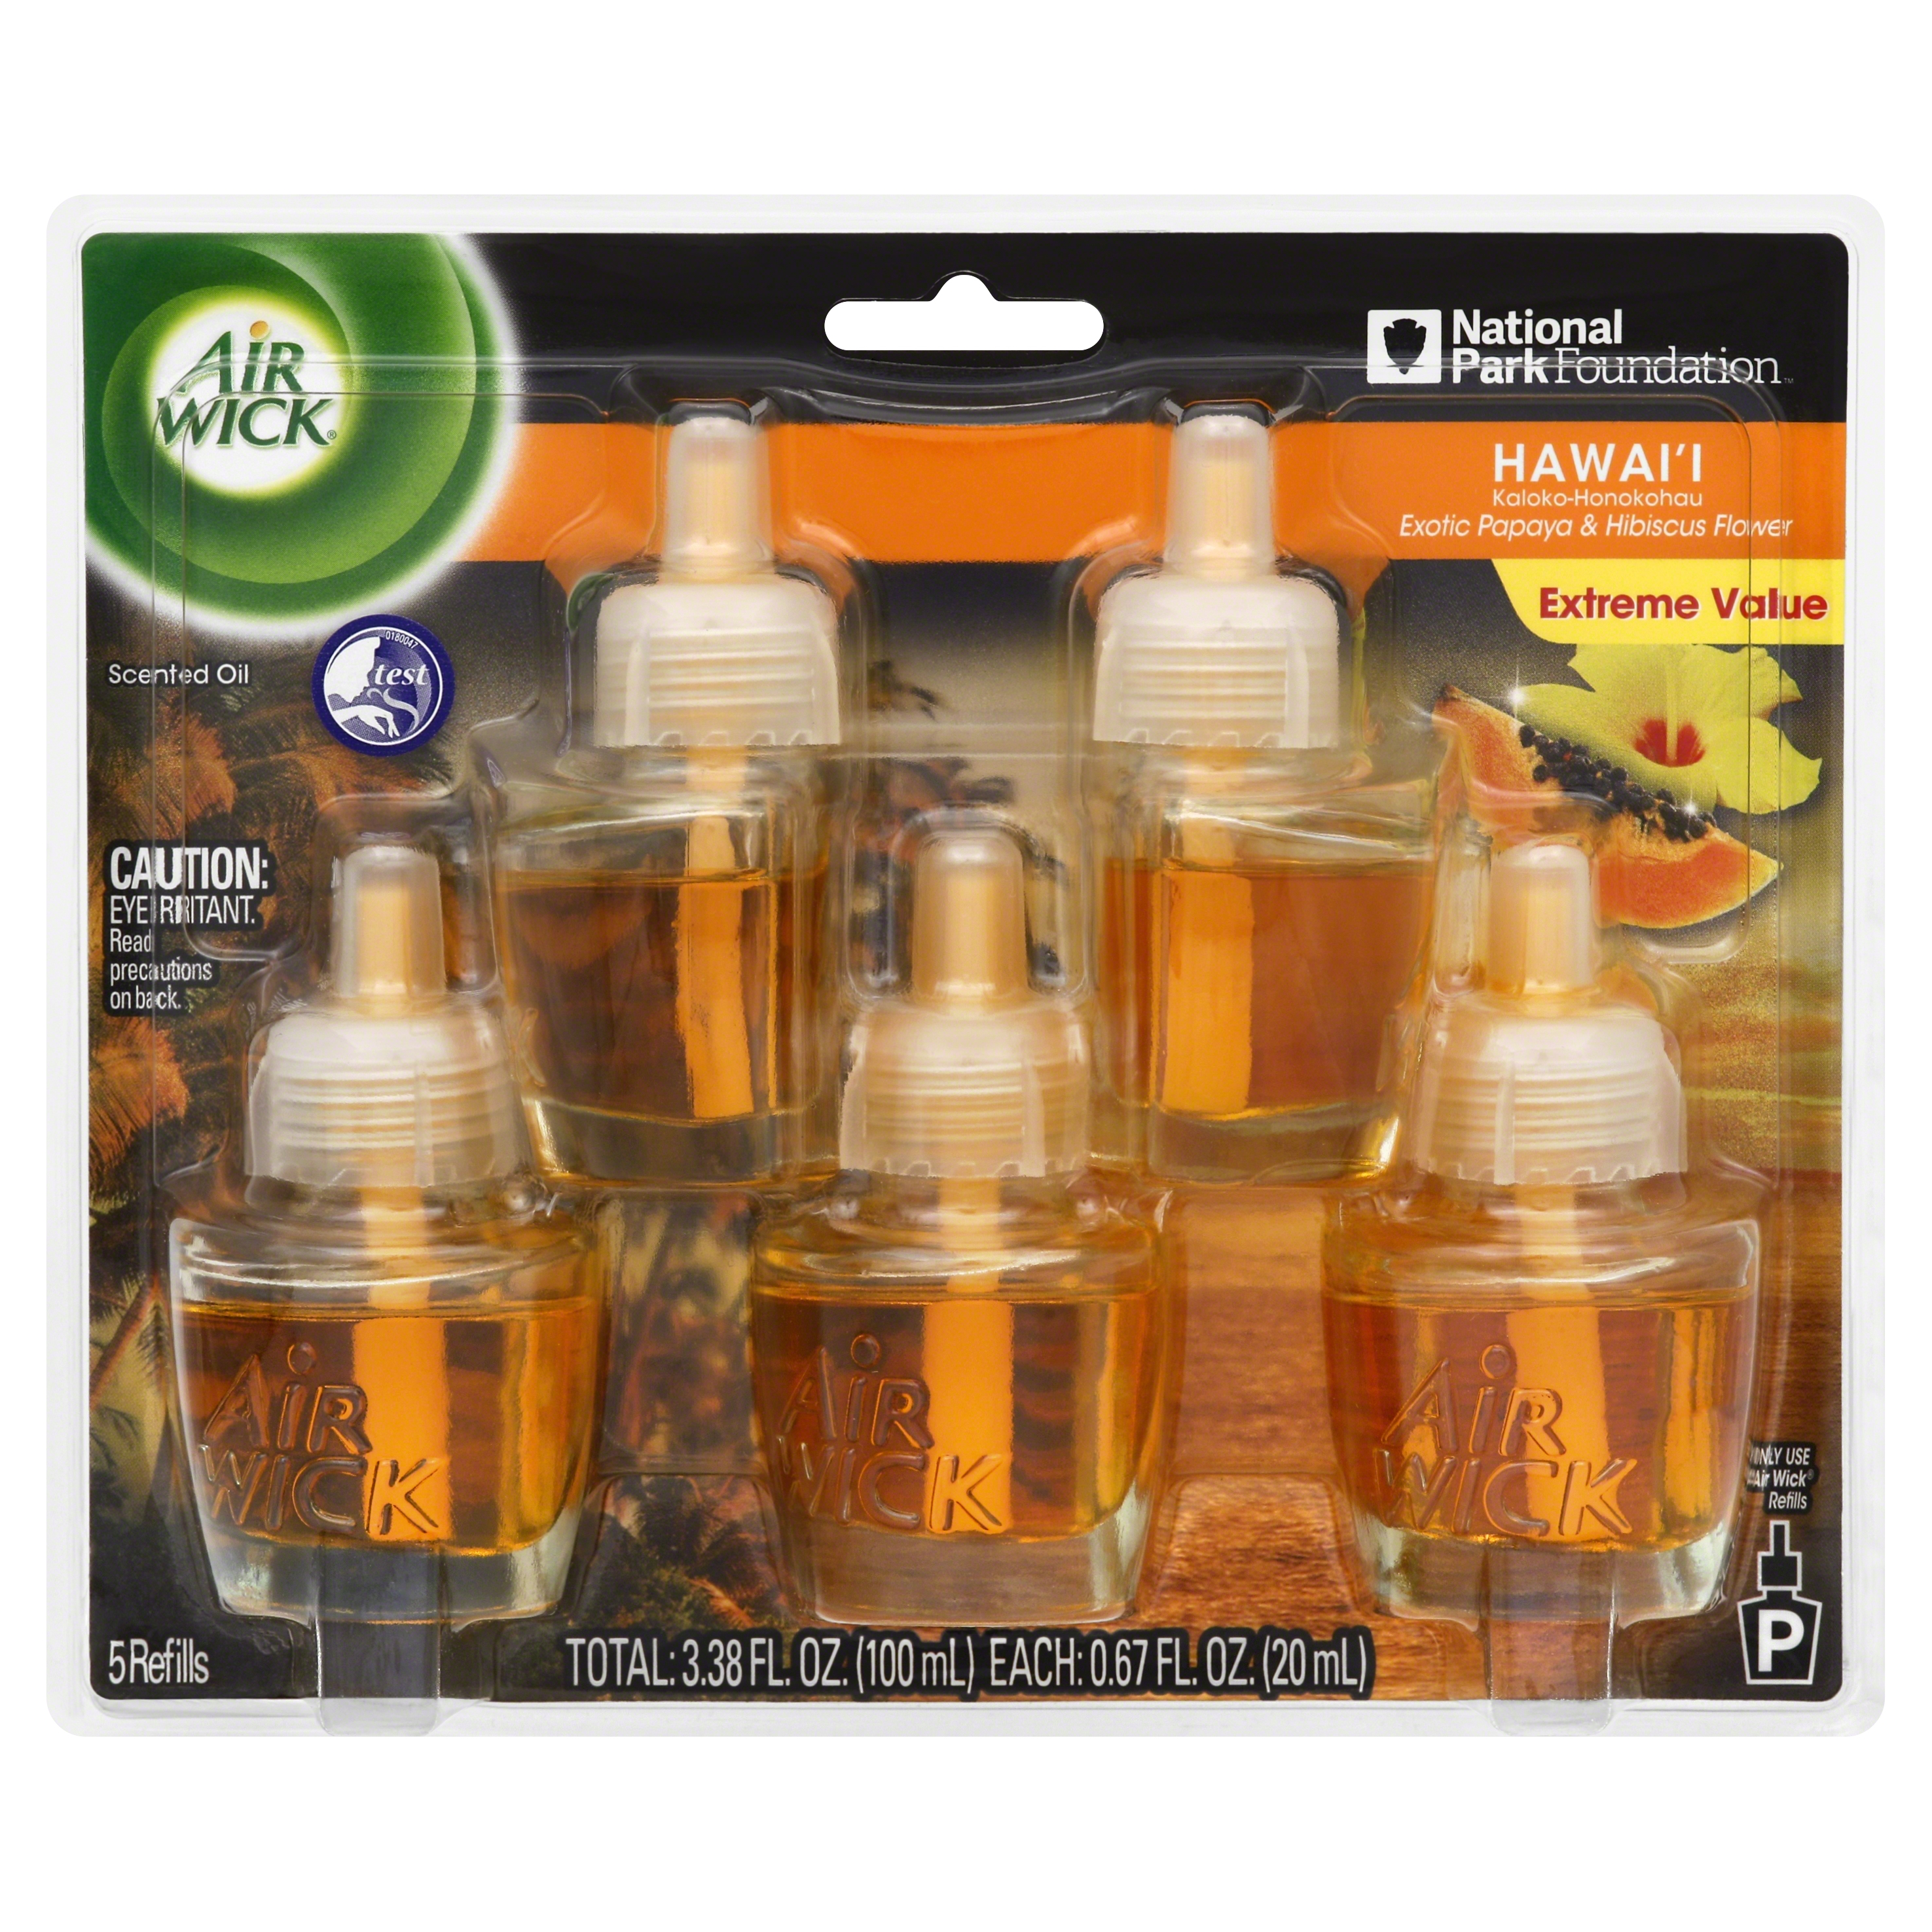 Air Wick Scented Oil Refill, Hawaii Exotic Papaya & Hibiscus Flower, 5 refills